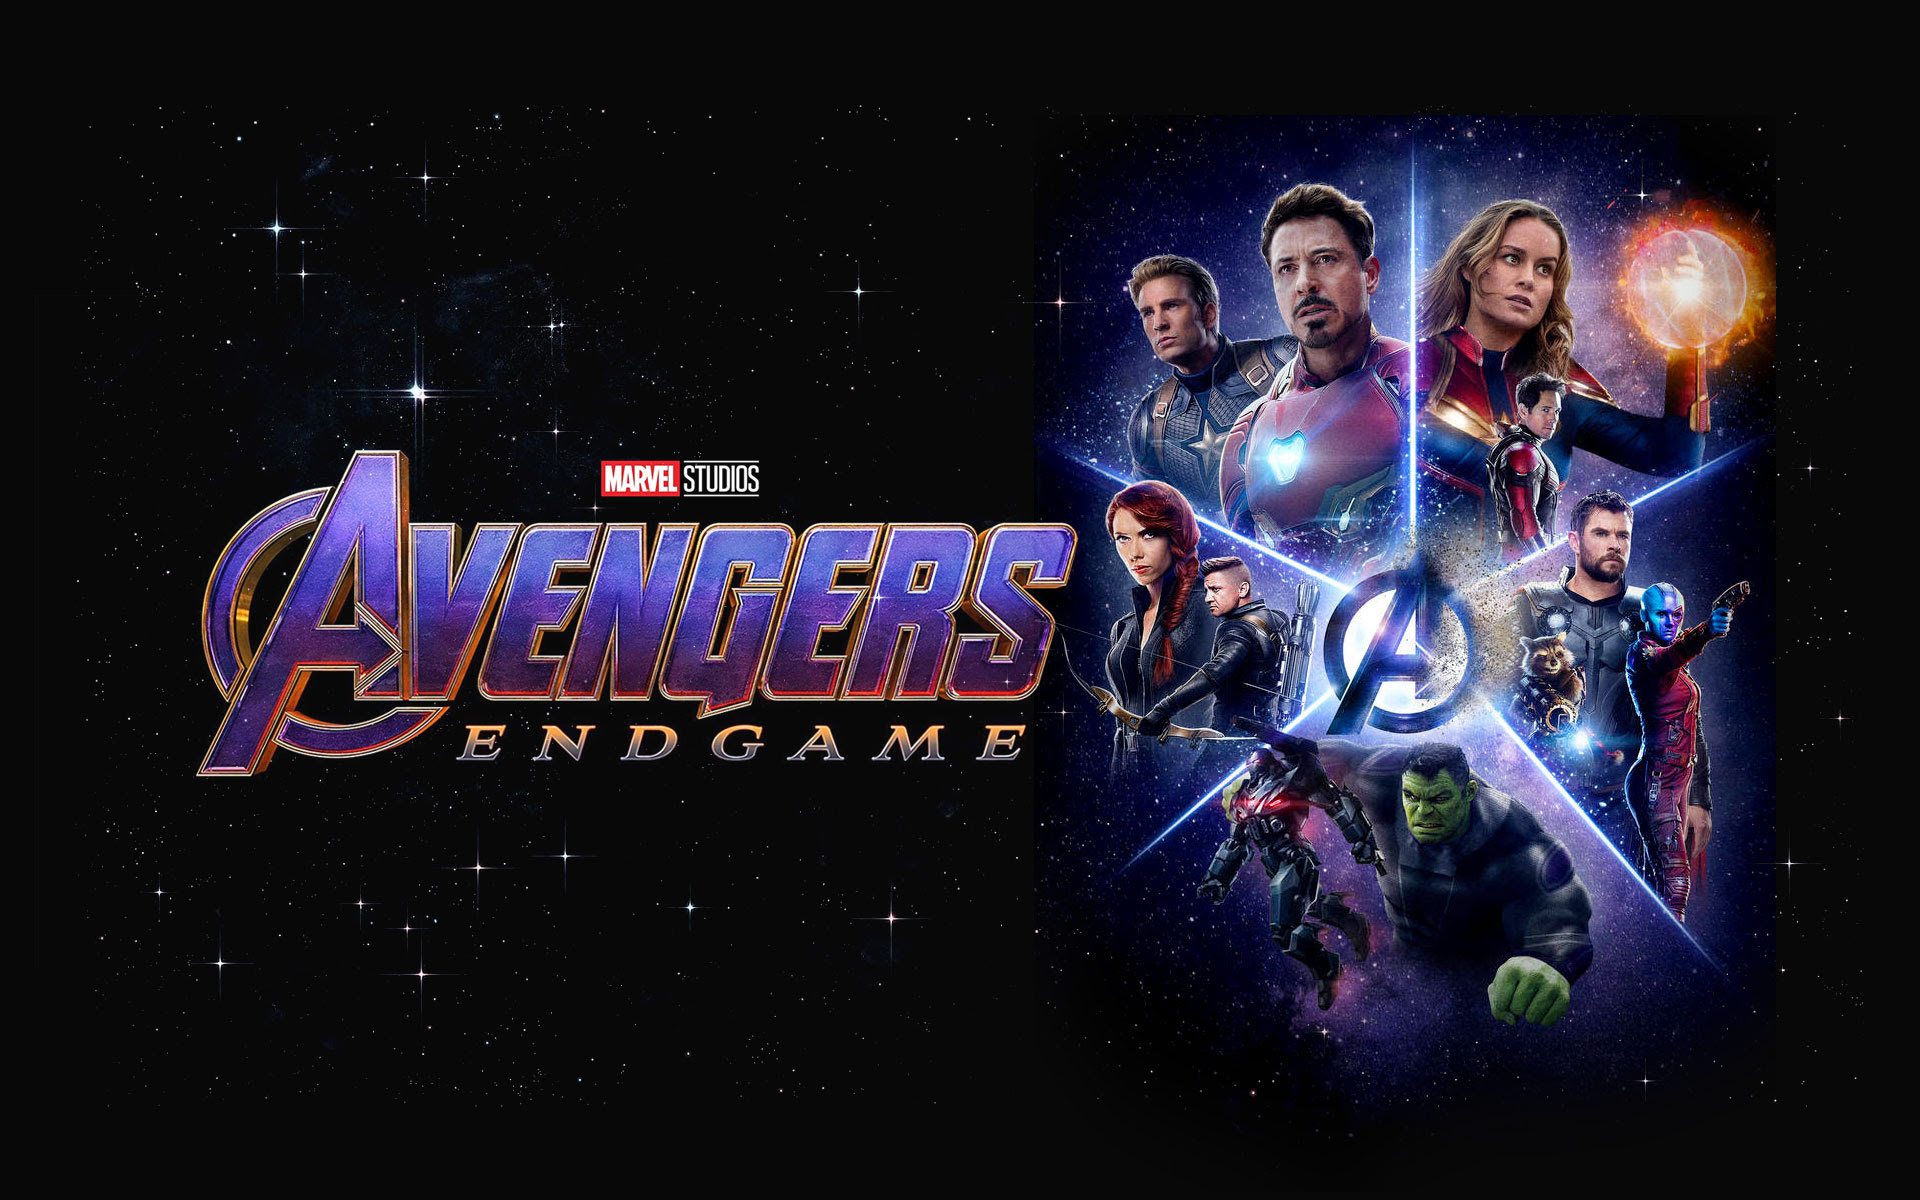 Avenger: Endgame Box Office Collection Top Rs.53 Crore on Opening Day in India